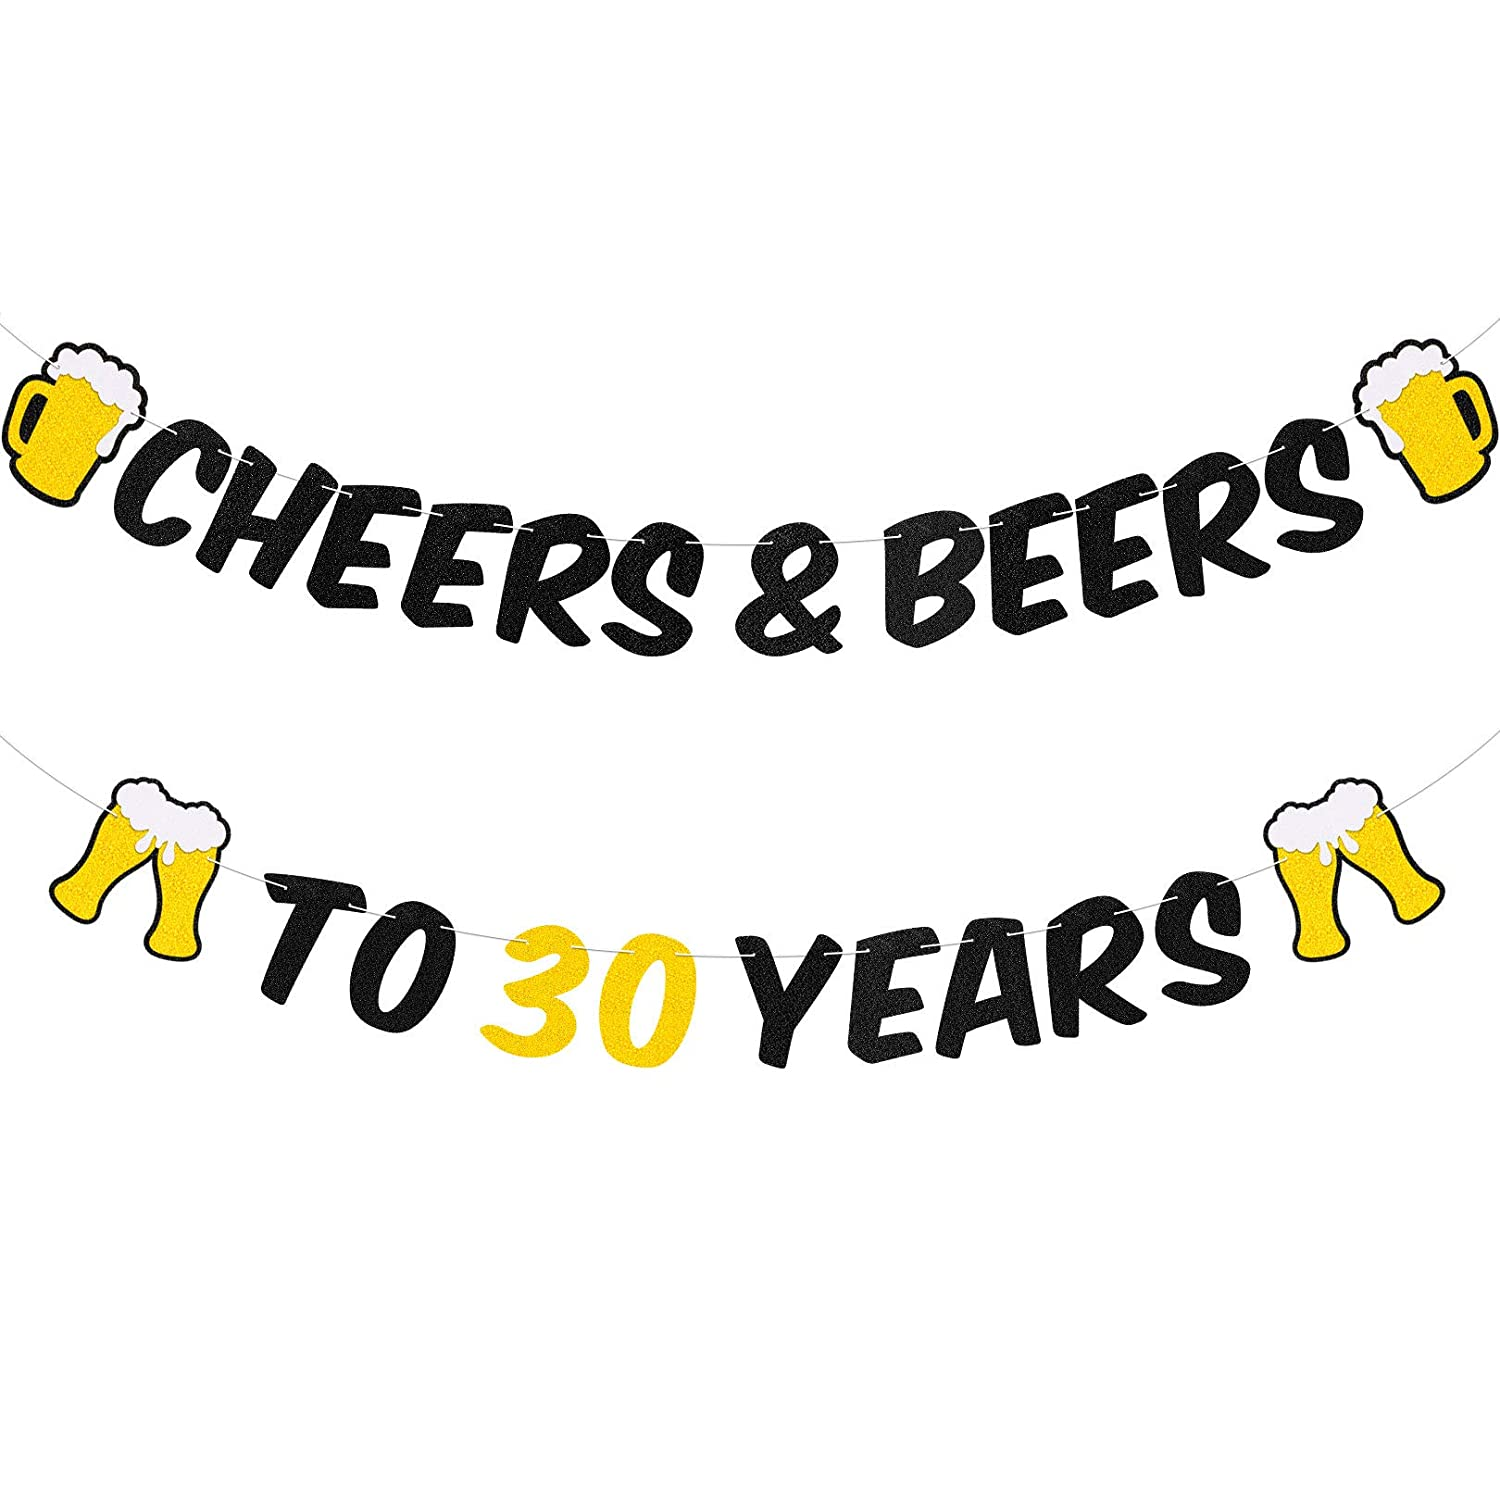 30th Birthday Decorations Cheers Black Glitter Banner for 30th Birthday 30 Years Wedding Anniversary Party Celebration Decoration Supplies Backdrop for Men Women Adults